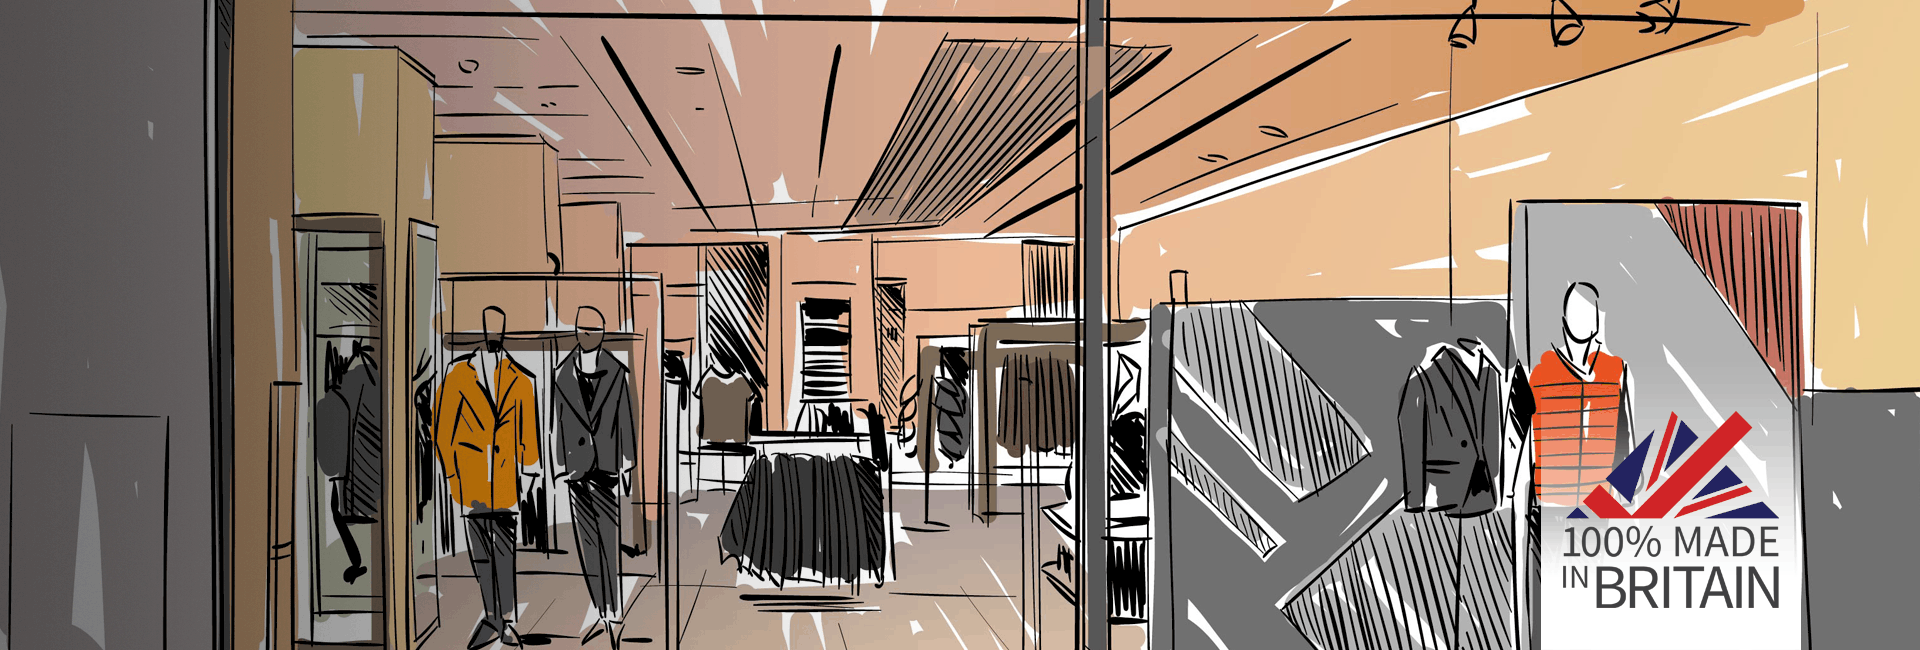 Retail clothing store drawing